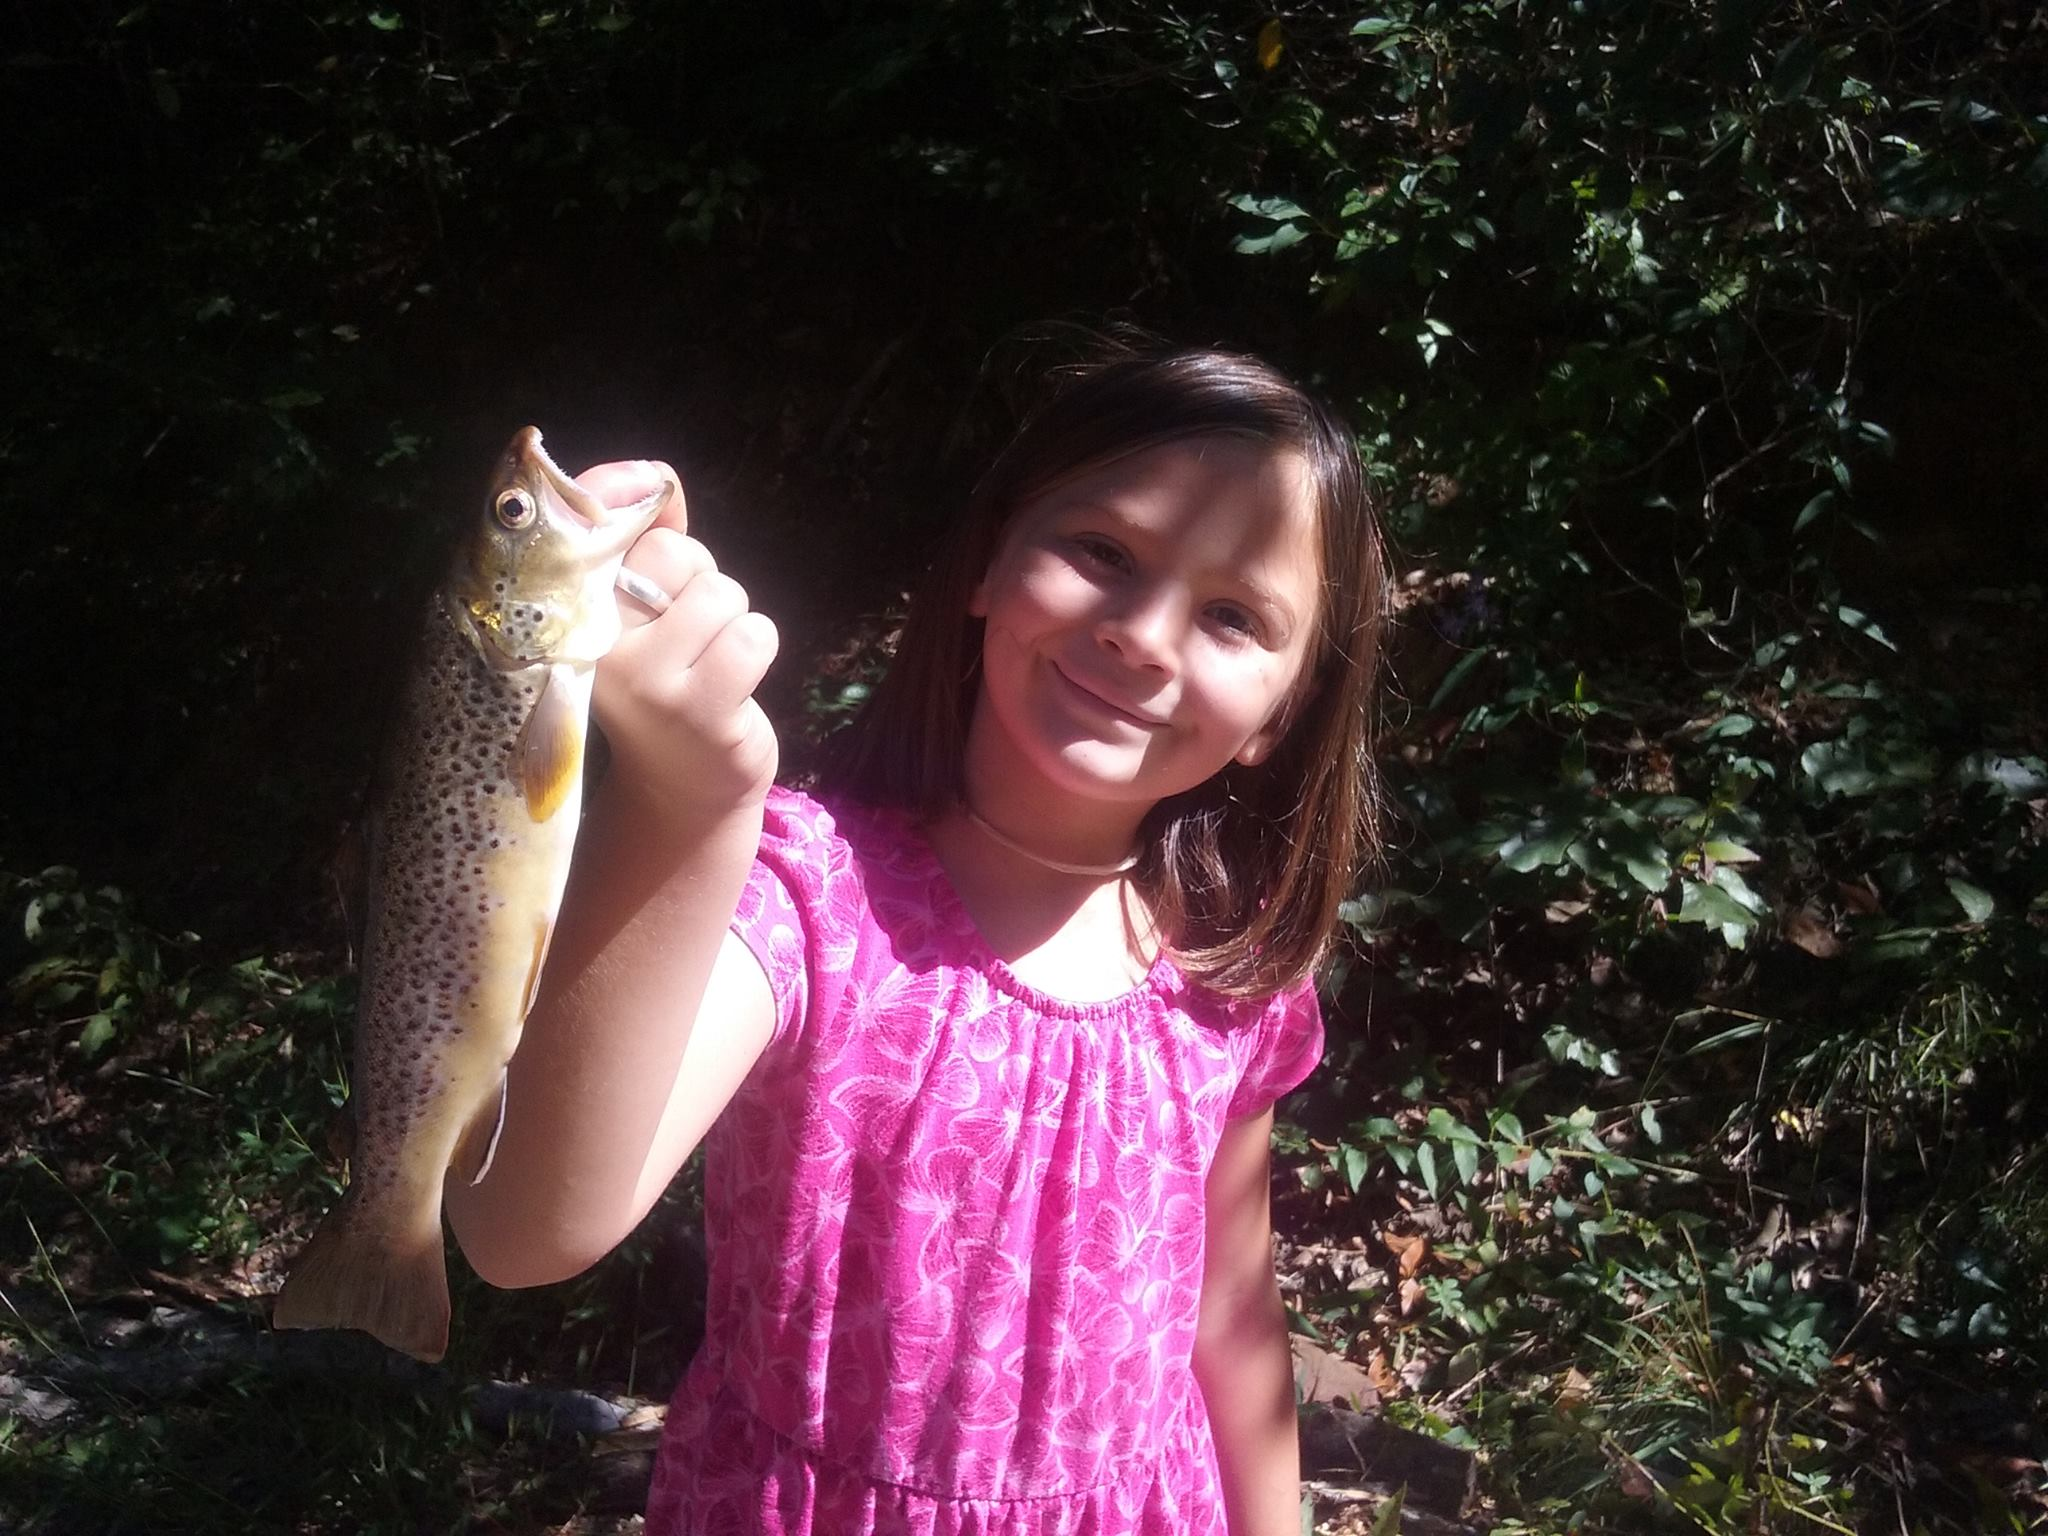 Haden Rhea Serres, 7, shows off her prize while fishing with her dad, Jason Serres, in a western North Carolina creek. Photo: Courtesy of Jason Serres